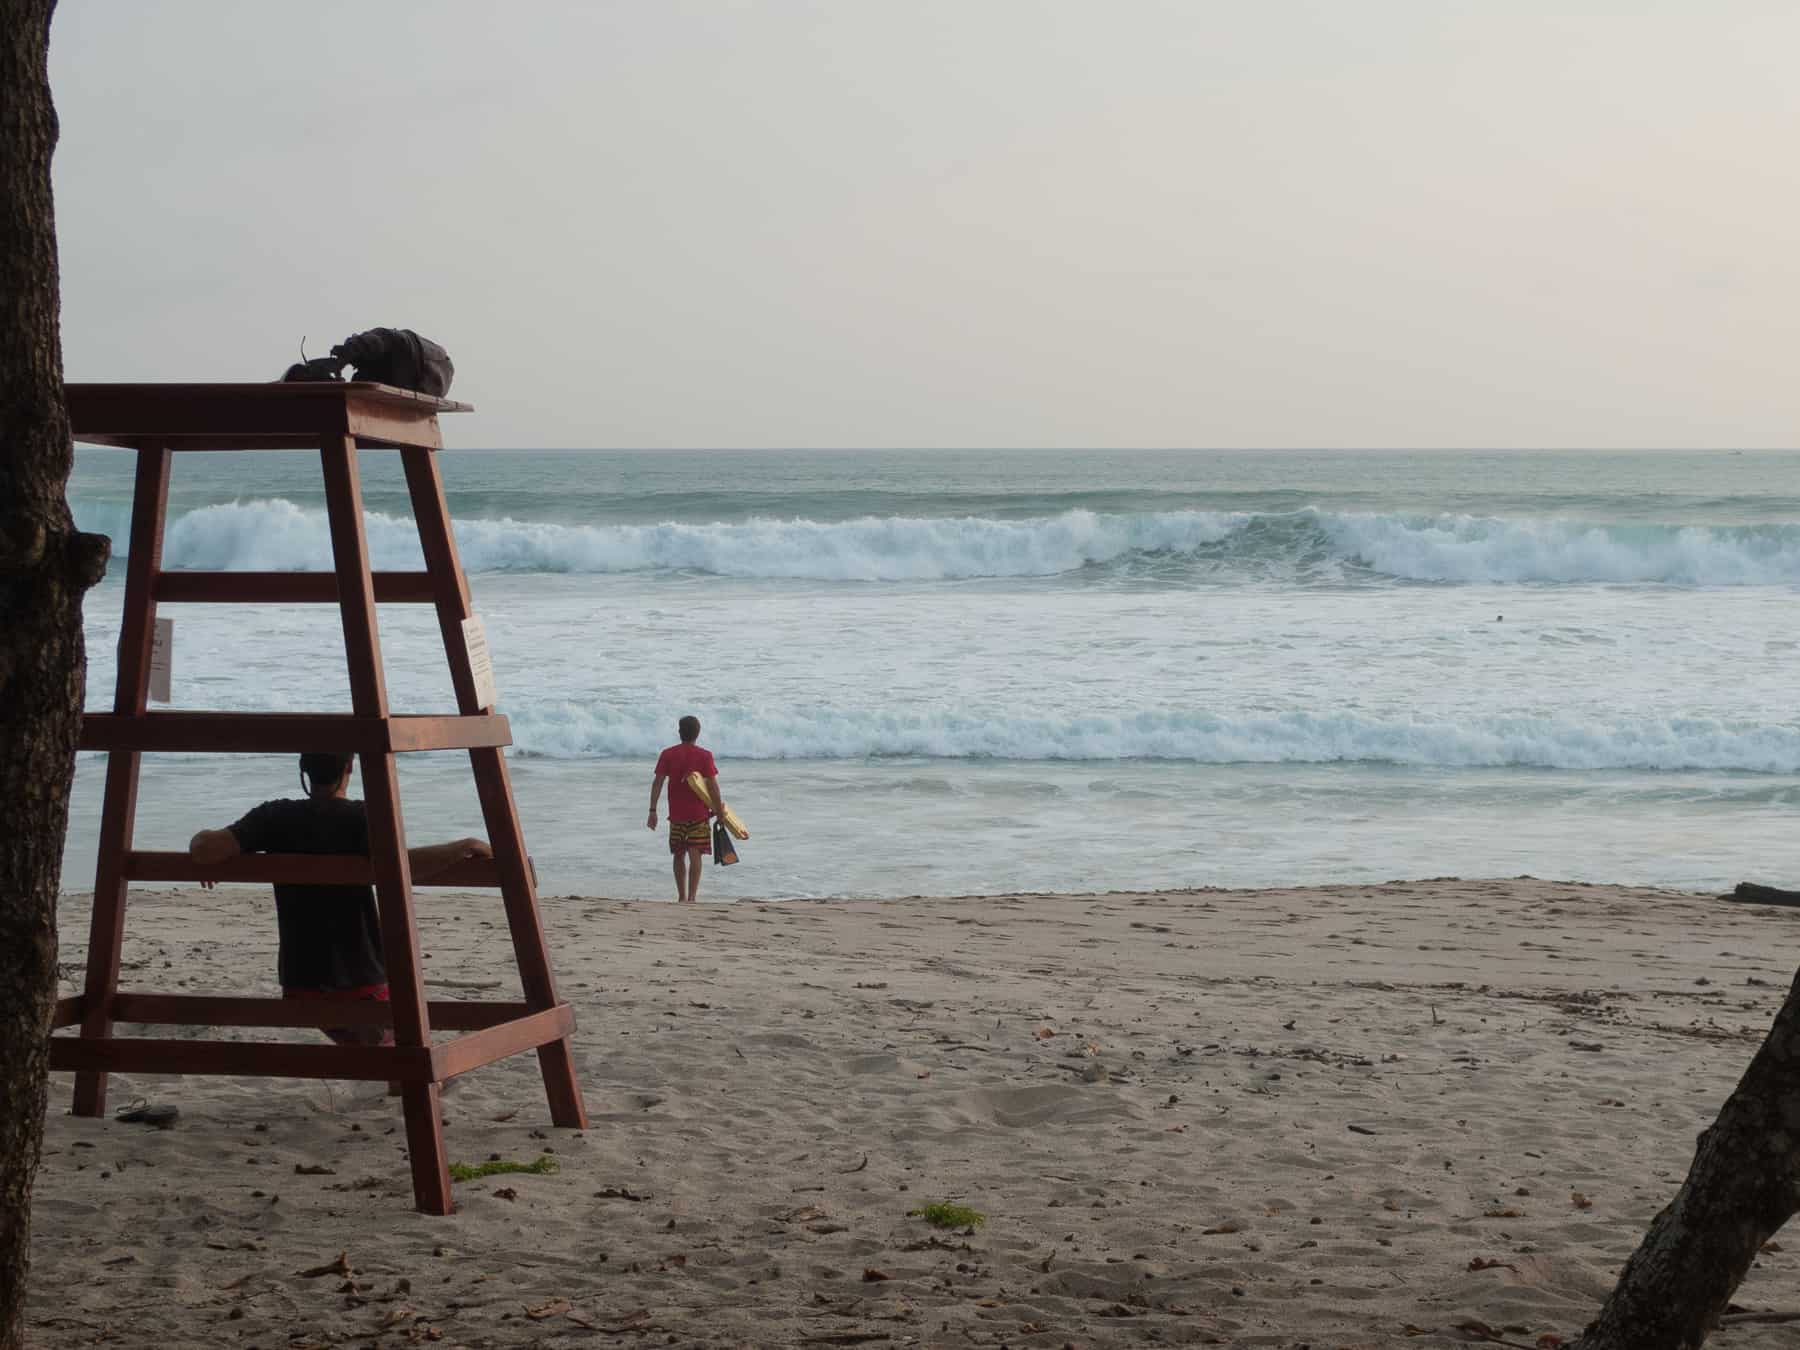 A Santa Teresa lifeguard stands at the water's edge.